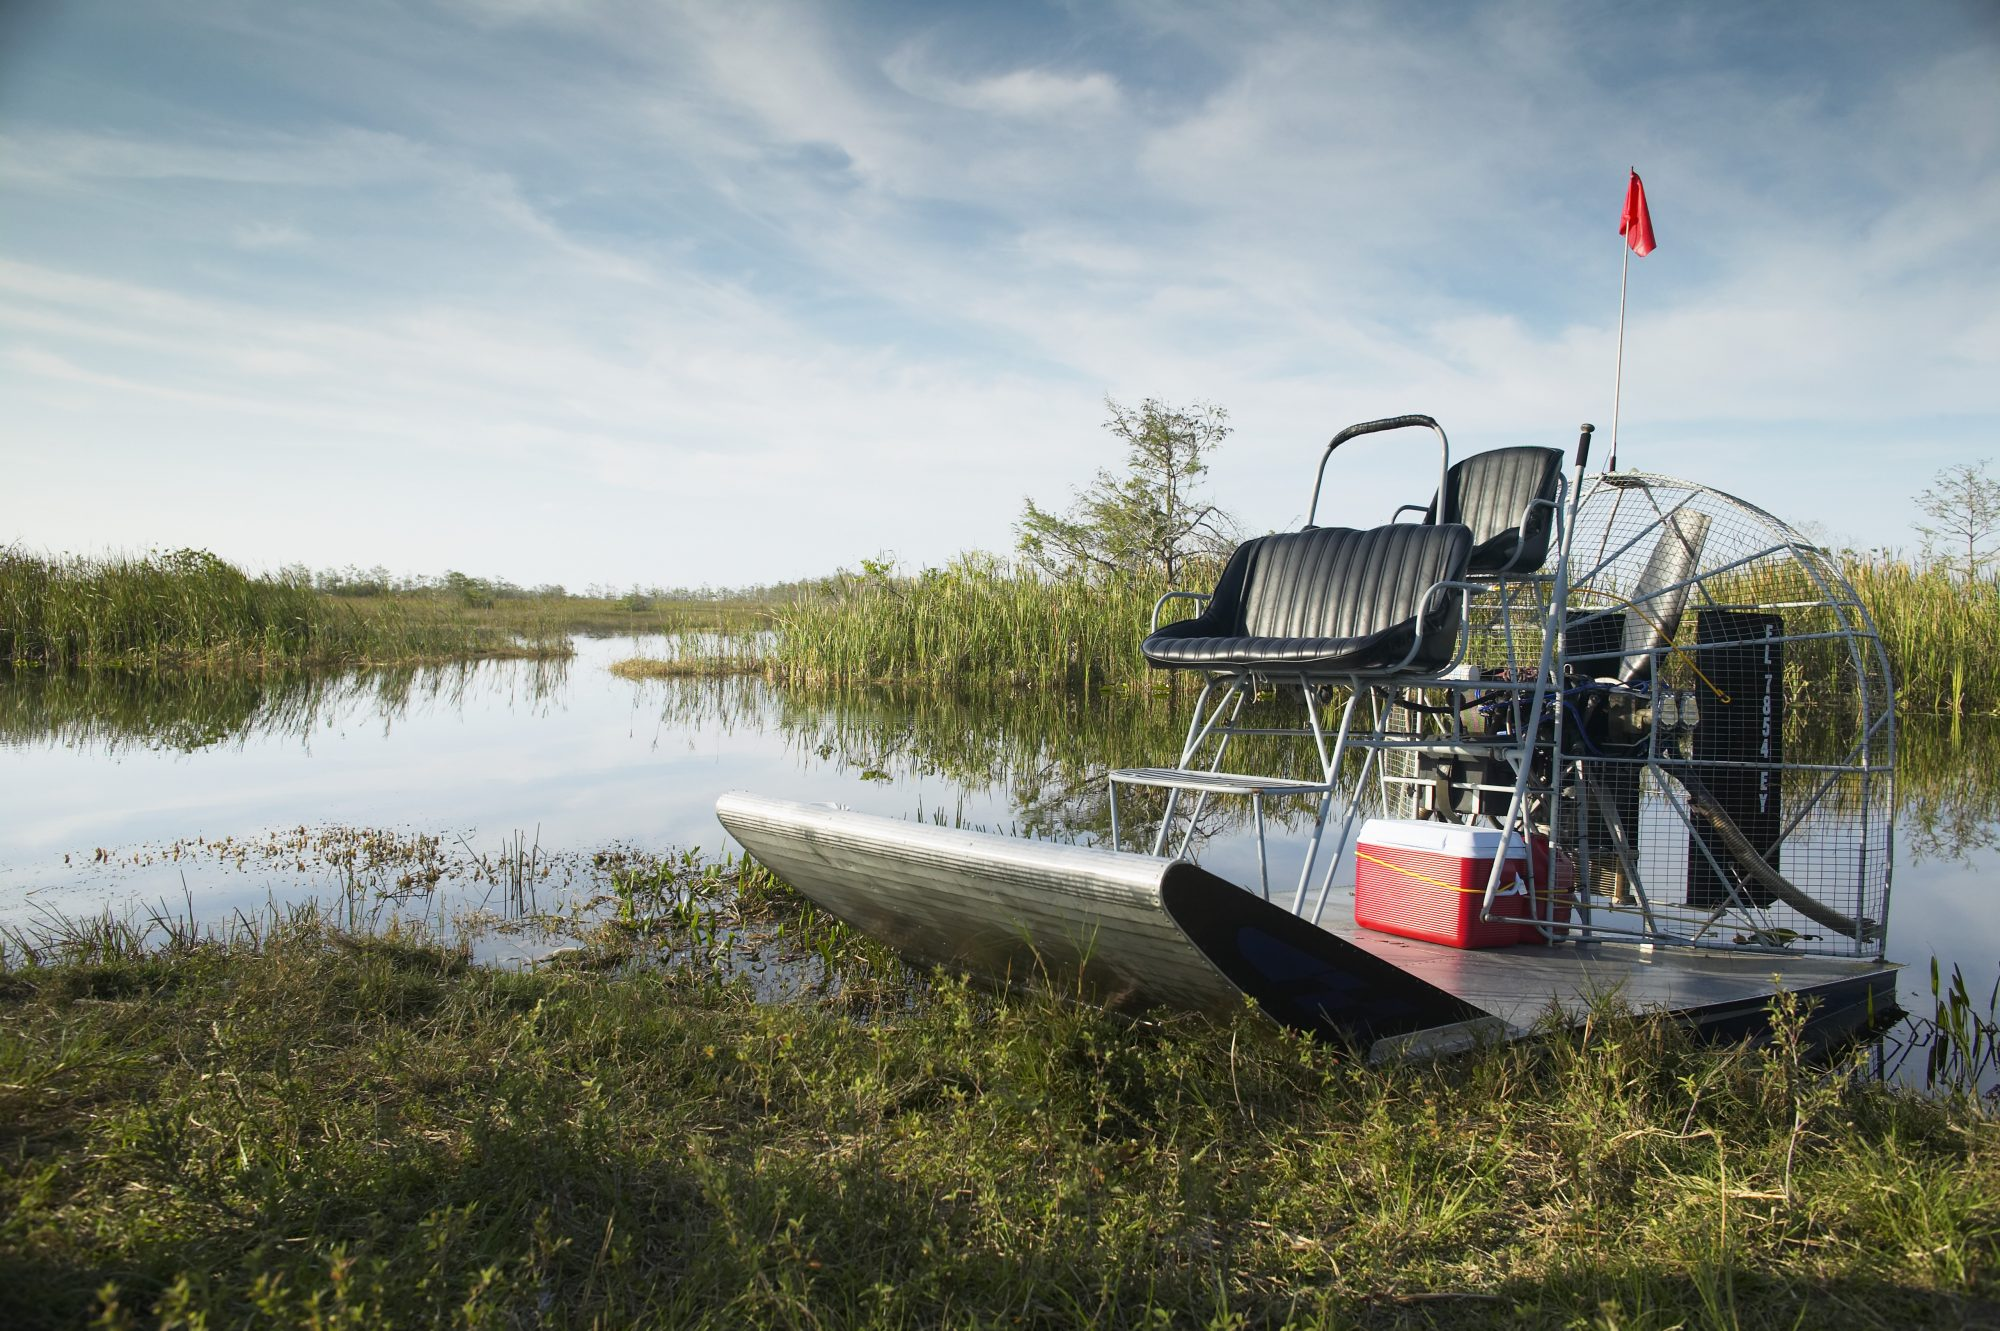 Airboat in the Florida Everglades